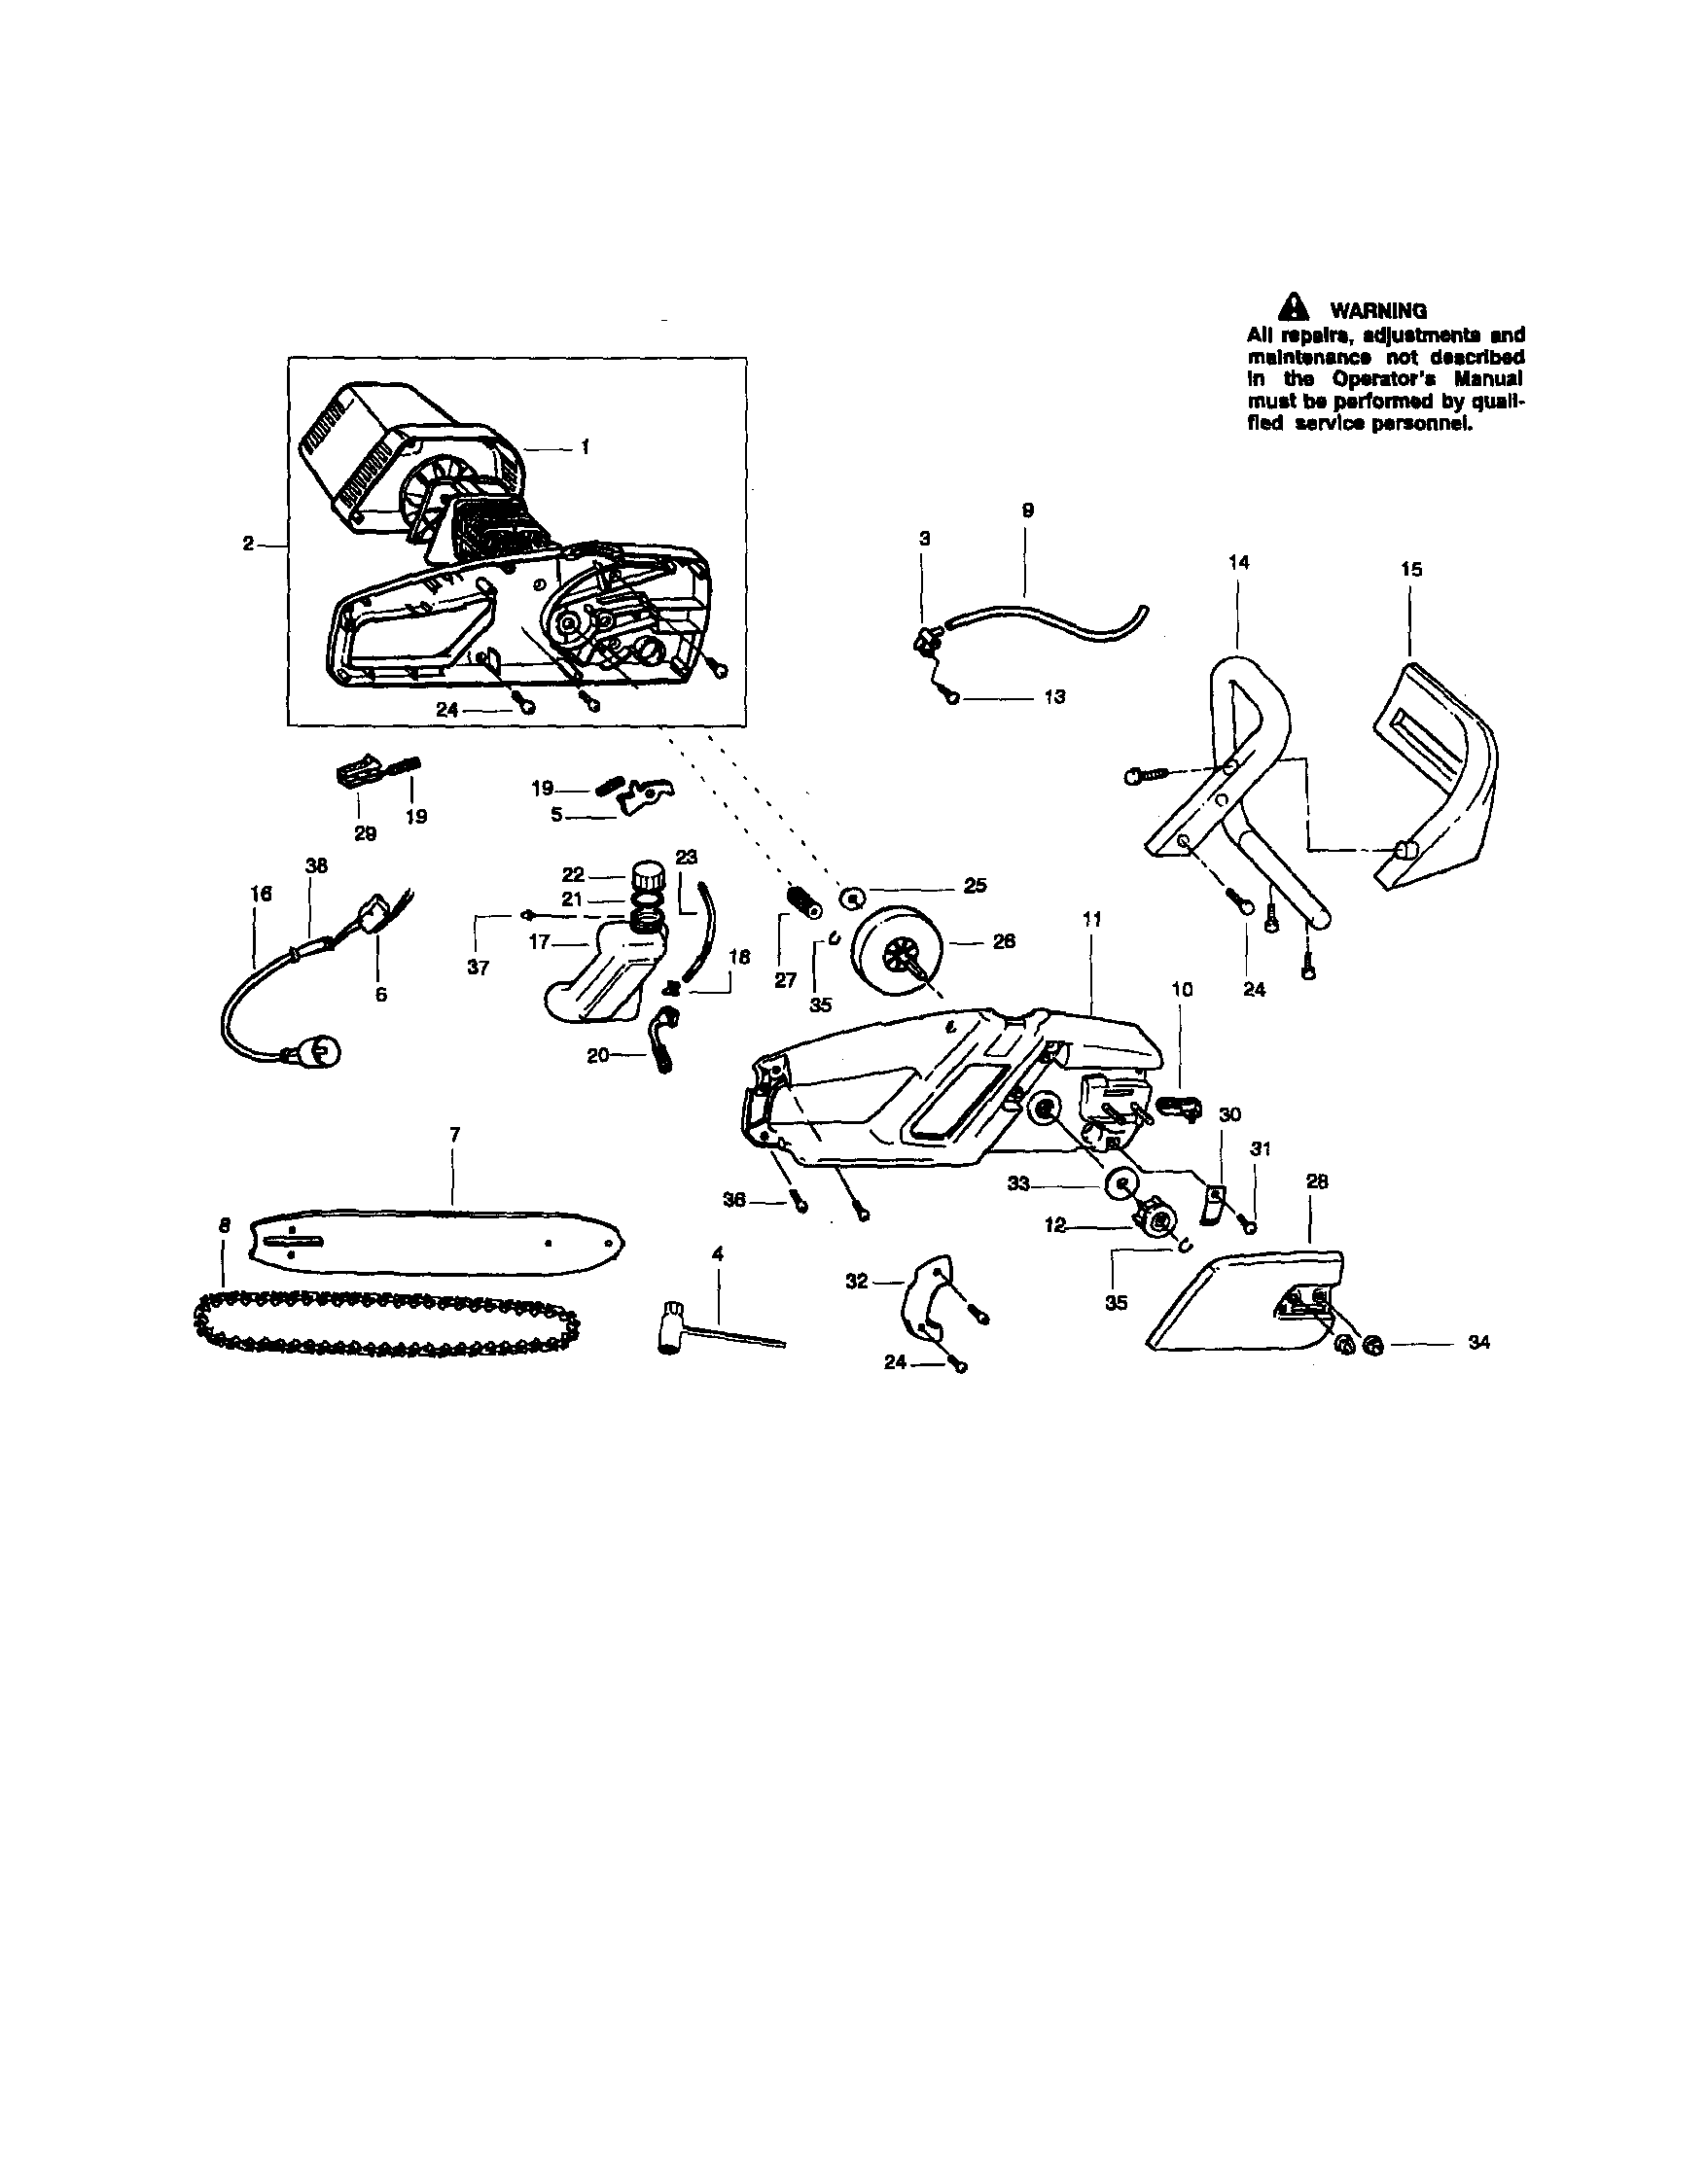 Husqvarna 435 Chainsaw Parts Diagram, Husqvarna, Free